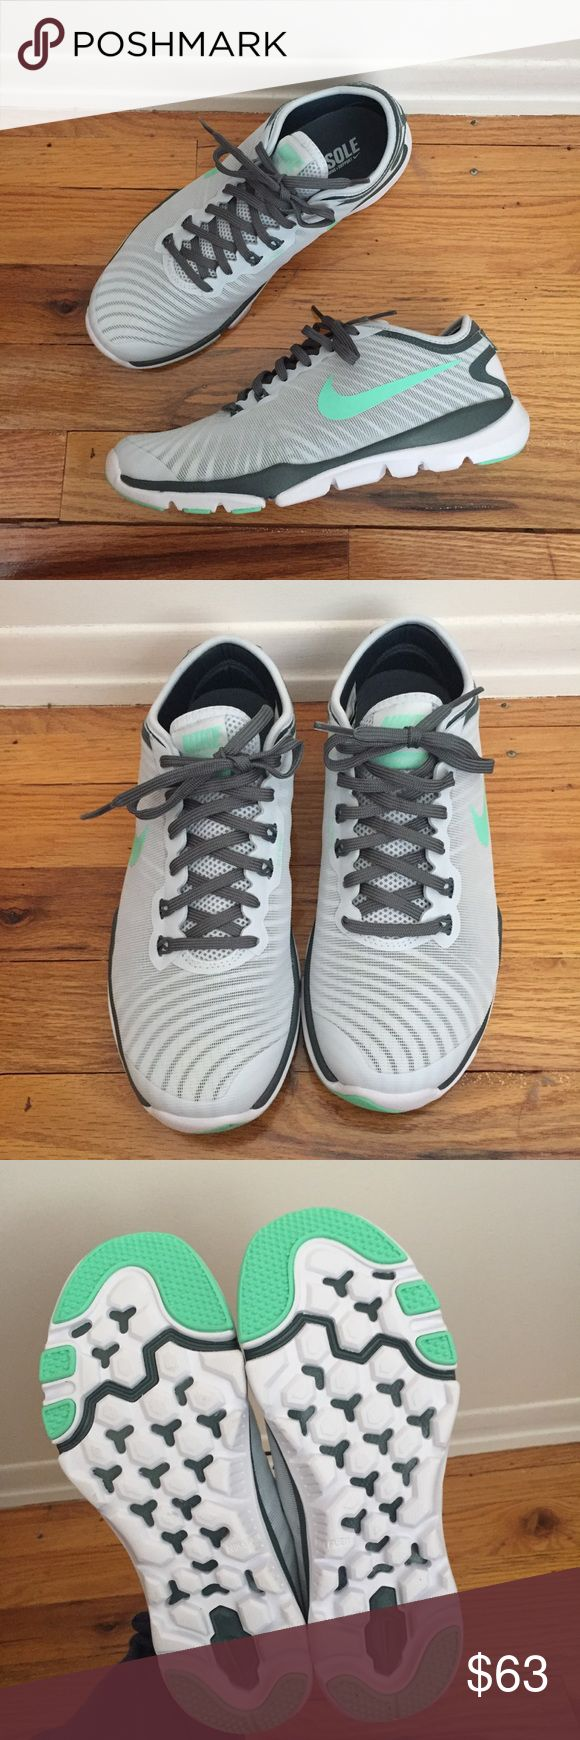 NIB Women's Nike Flex Supreme Trainer 4 size 6.5 Brand new! Women's NIKE Flex Supreme Trainer 4 sneakers. Size 6.5. Super lightweight, flexible, and comfortable. Perfect for every day wear or exercise. White, gray, and teal blue colors. Nike Shoes Sneakers